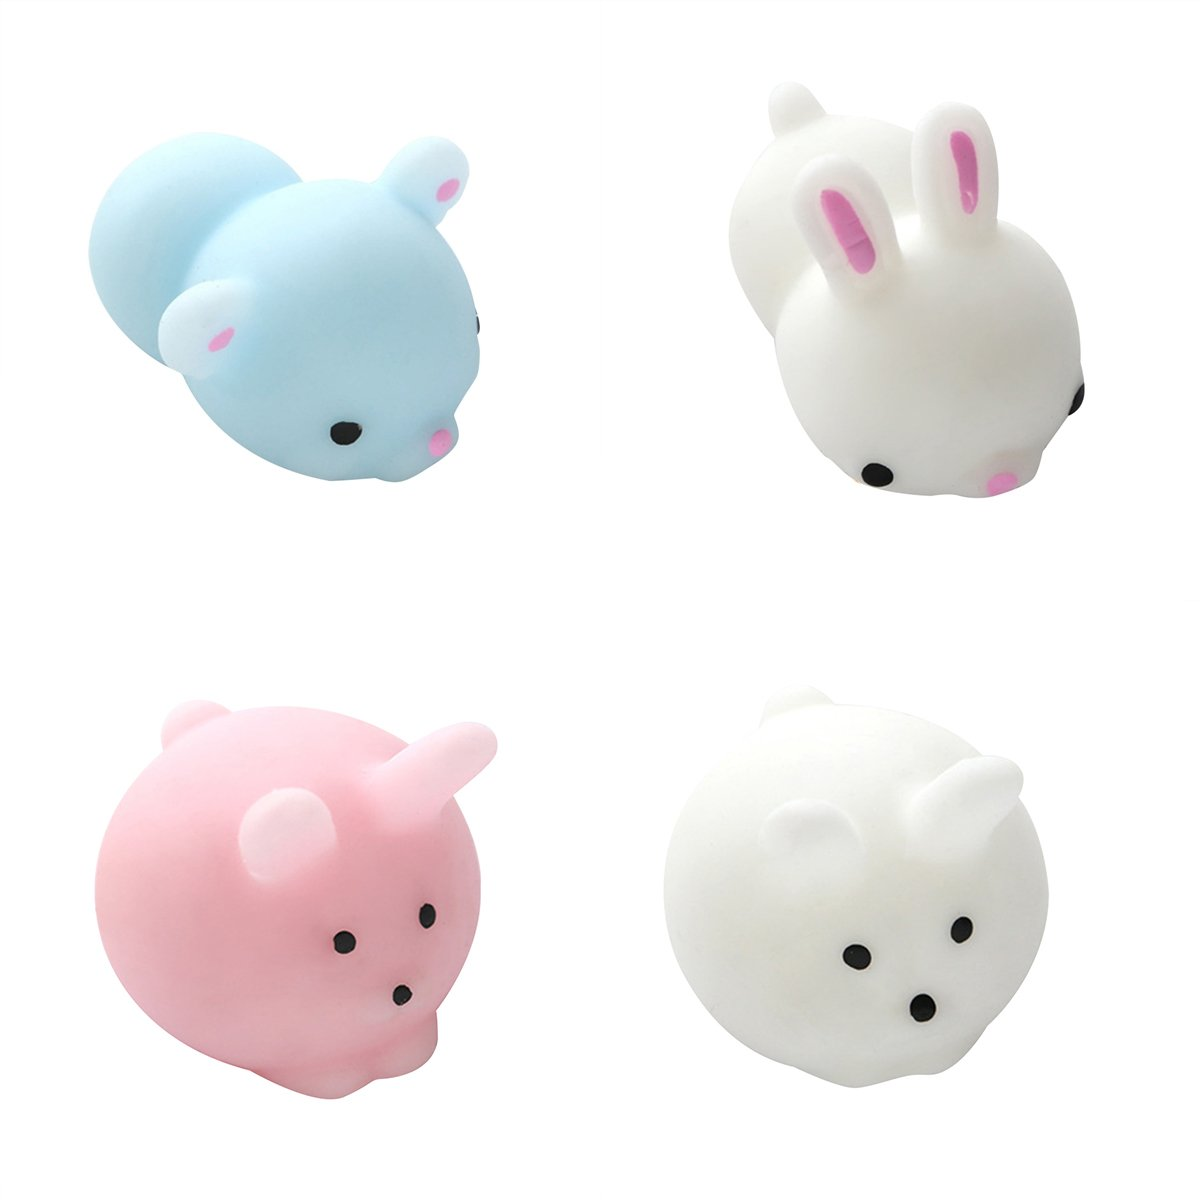 TOYMYTOY Pack de 4 Squeeze Toy Mini lindo conejo Bear animales lentos Rising Stress Relief Juguetes